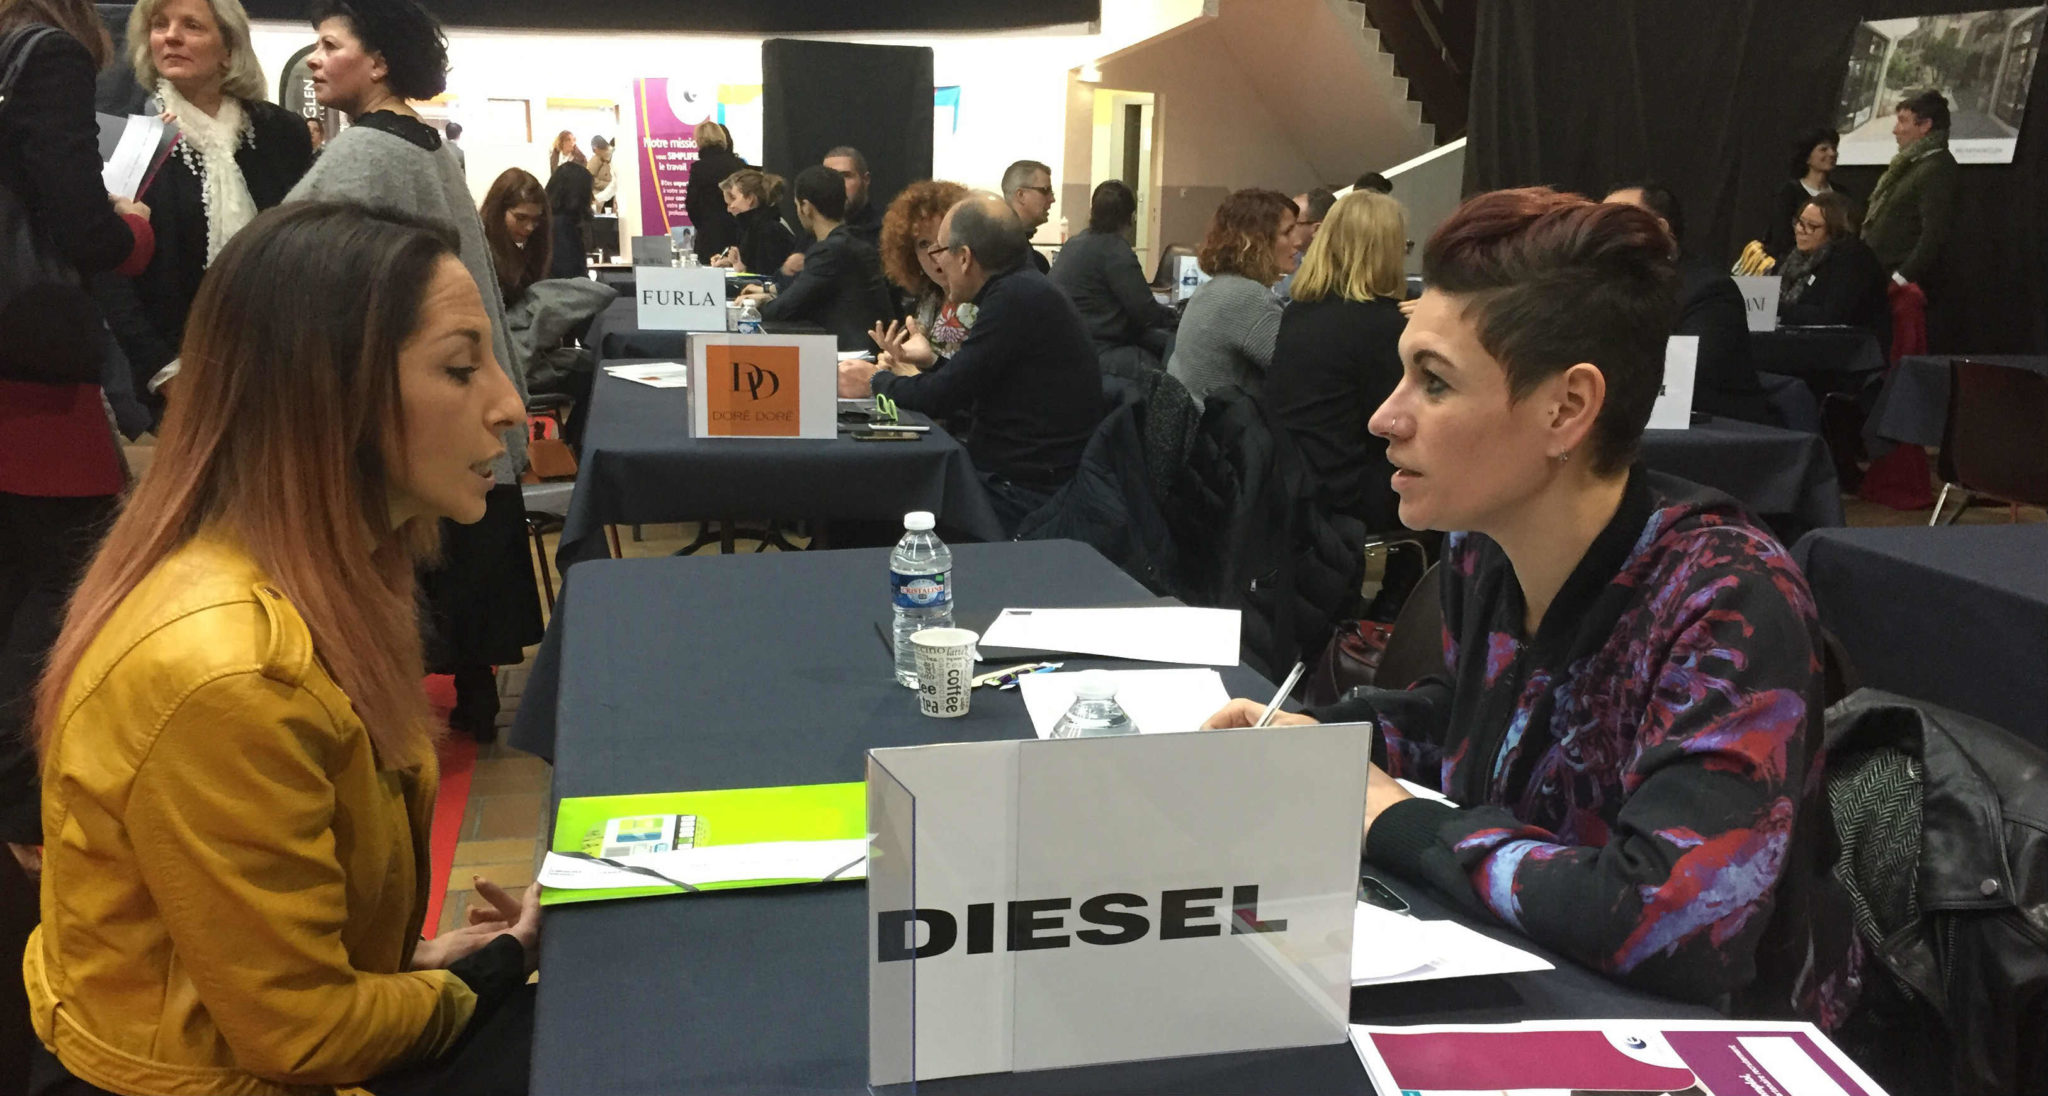 job dating diesel Dieseljobscom is the largest niche job board serving the heavy equipment and truck industry if your engine runs on diesel, your career runs on dieseljobs.